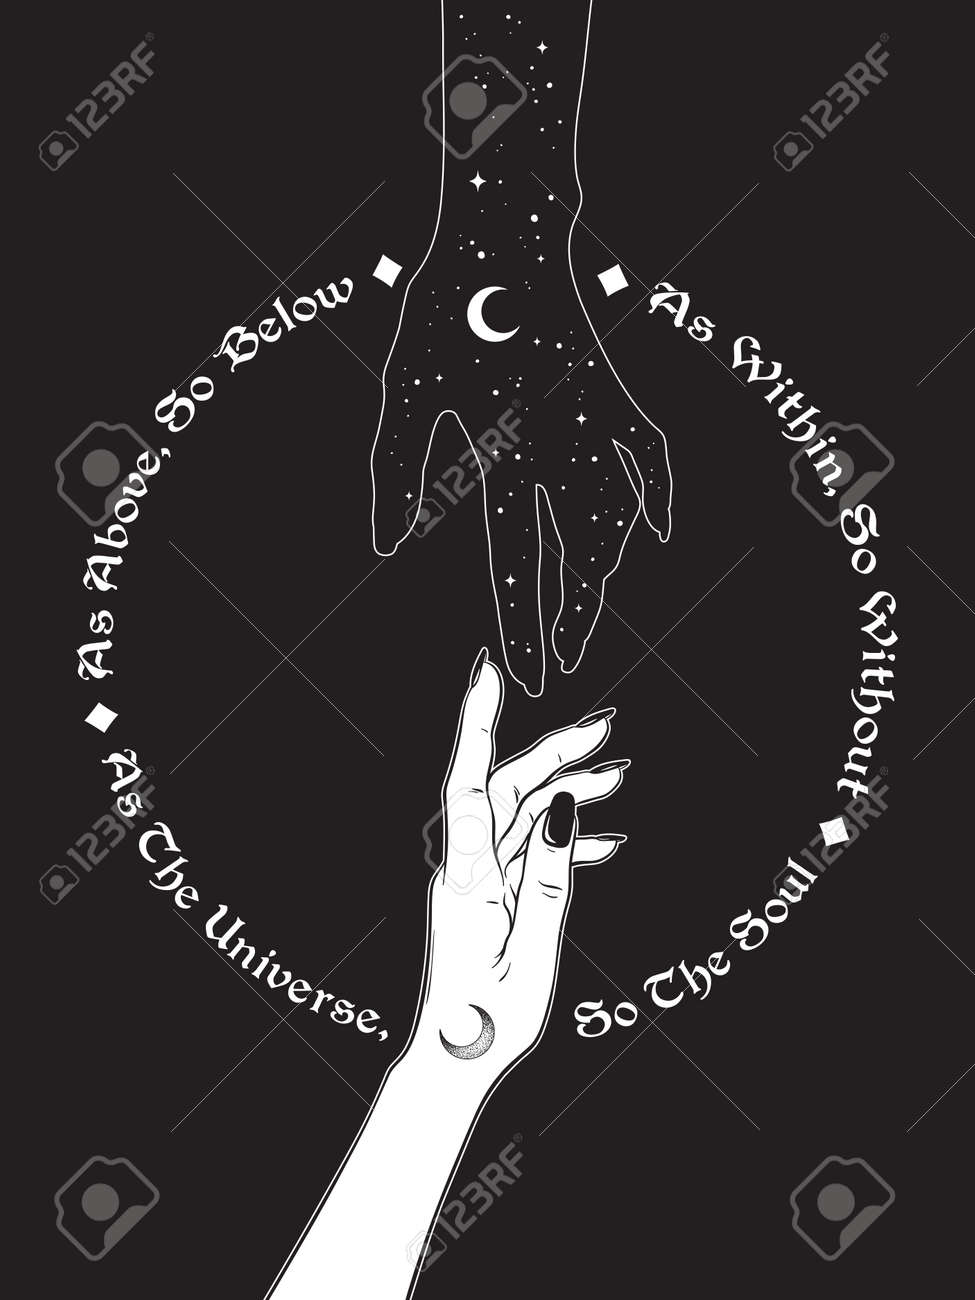 Hand of universe reaching out to human hand. Inscription is a maxim in hermeticism and sacred geometry. As above, so below. Black work, flash tattoo or print design vector illustration. - 163870715